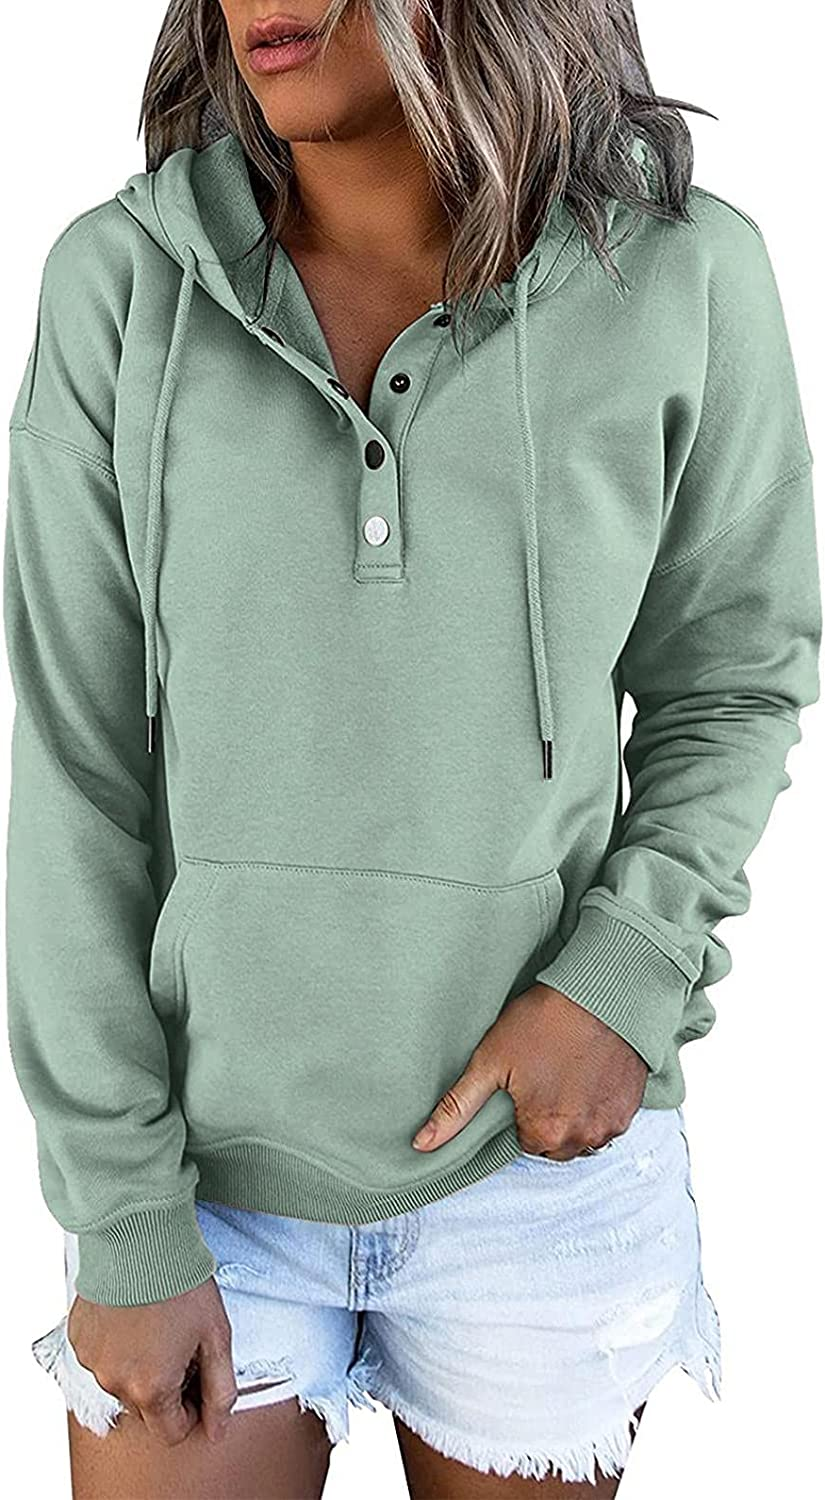 AODONG Hoodies for Womens Button Down Hoodies Drawstring Hooded Pocket Casual Long Sleeve V Neck Sweatshirts